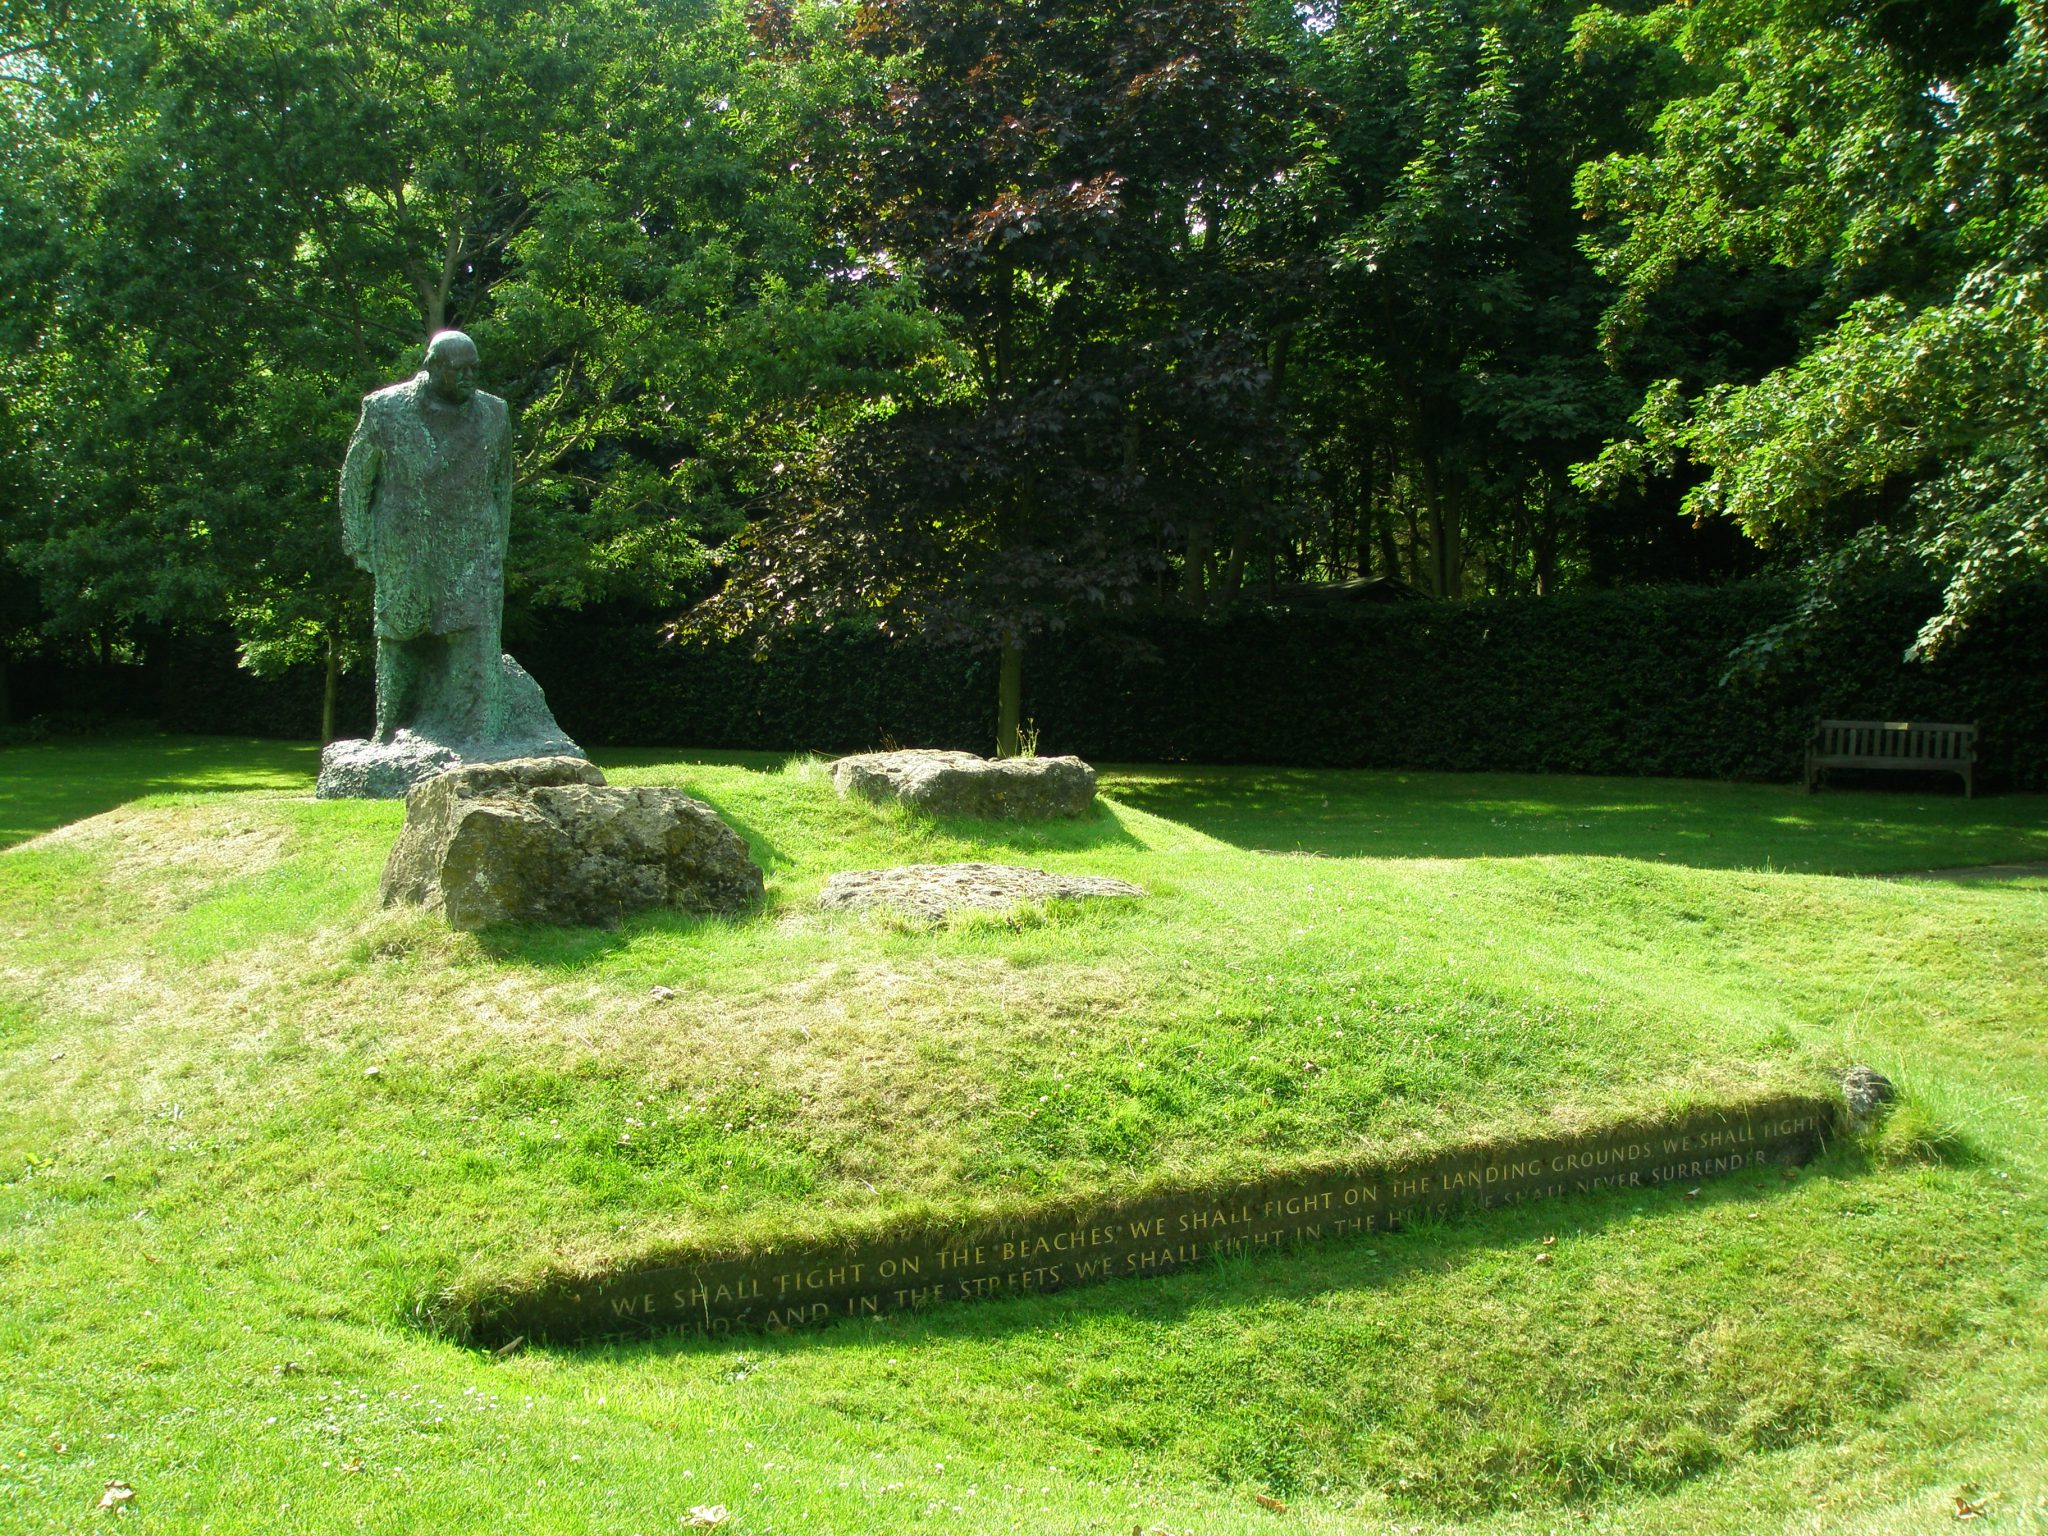 Further uphill, we met this rather grumpy-looking statue of Winston Churchill.